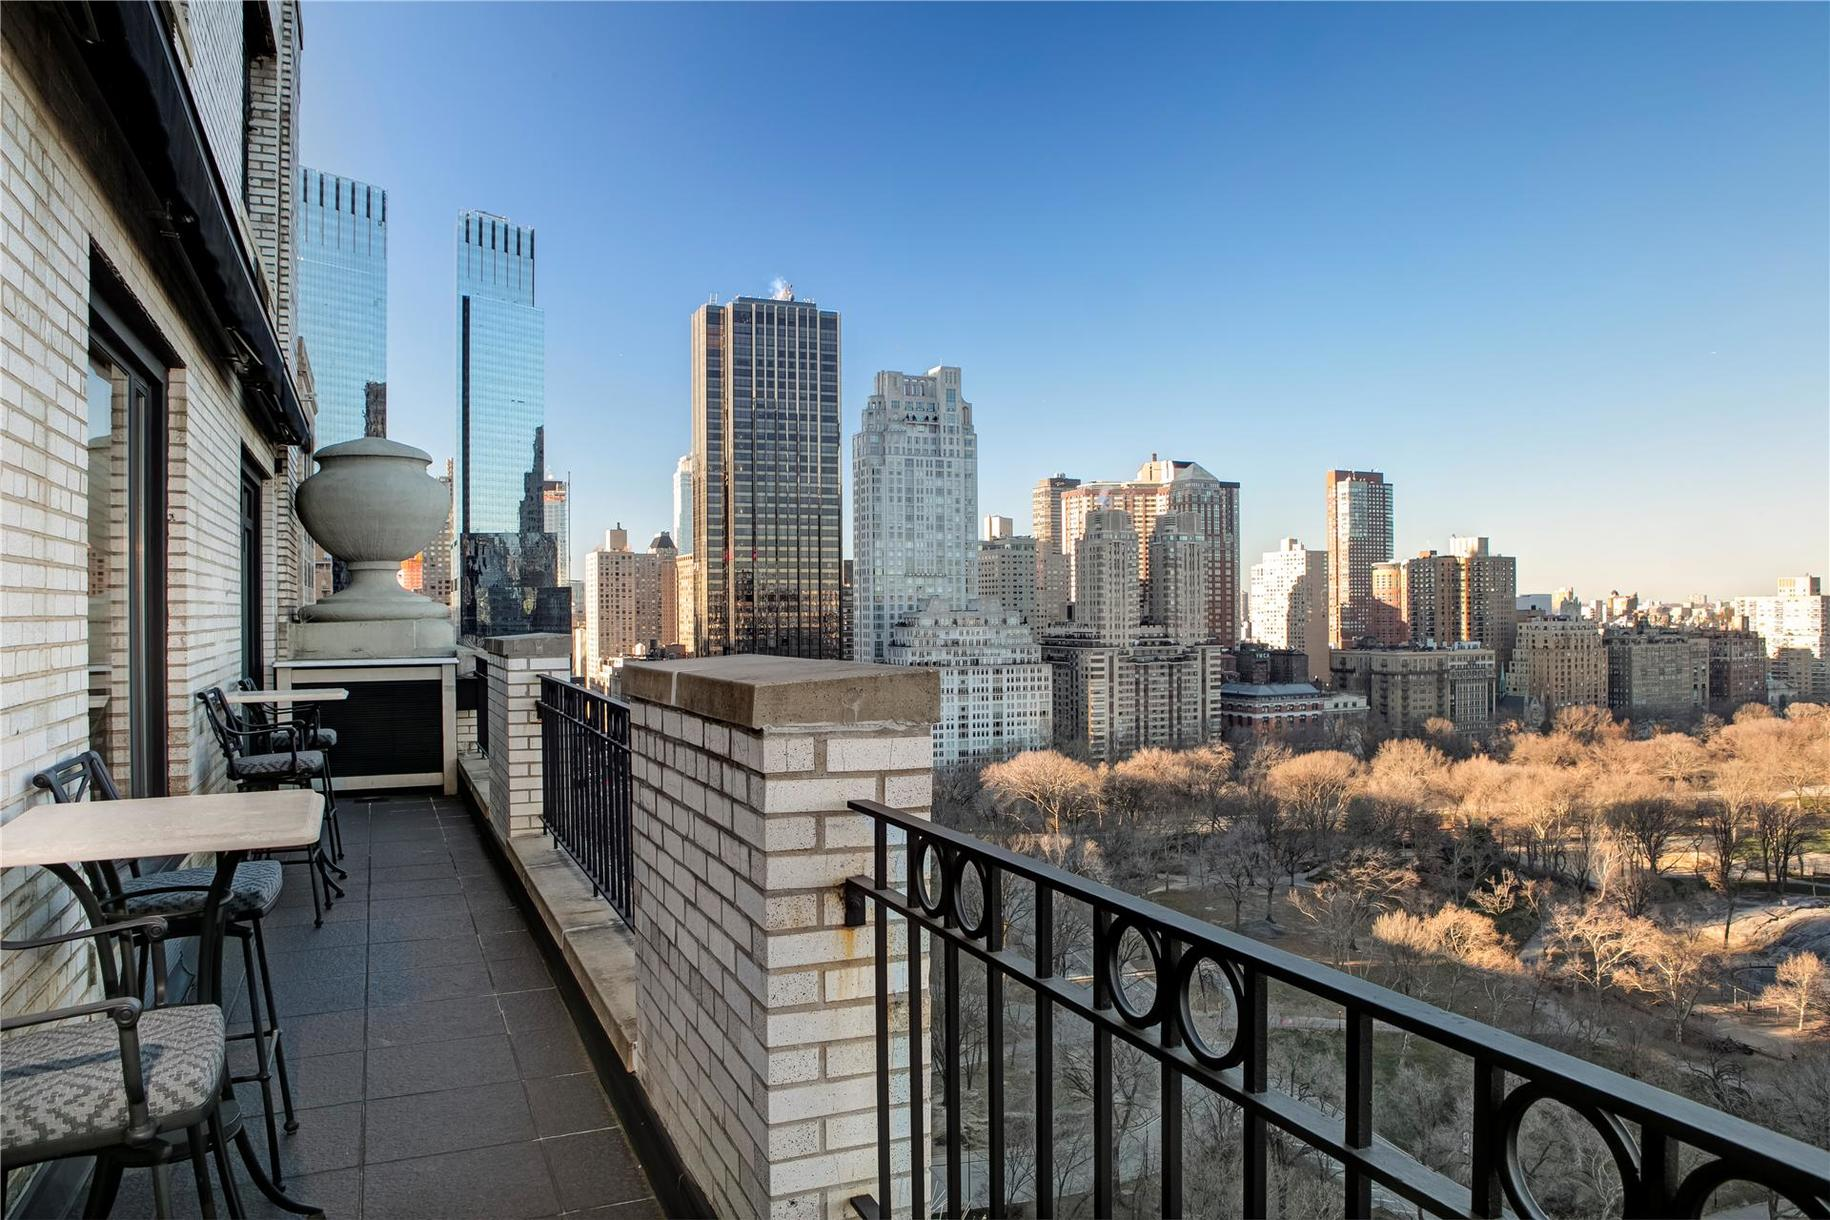 Luciano pavarotti s 10 5m pied terre and next door unit for New york balcony